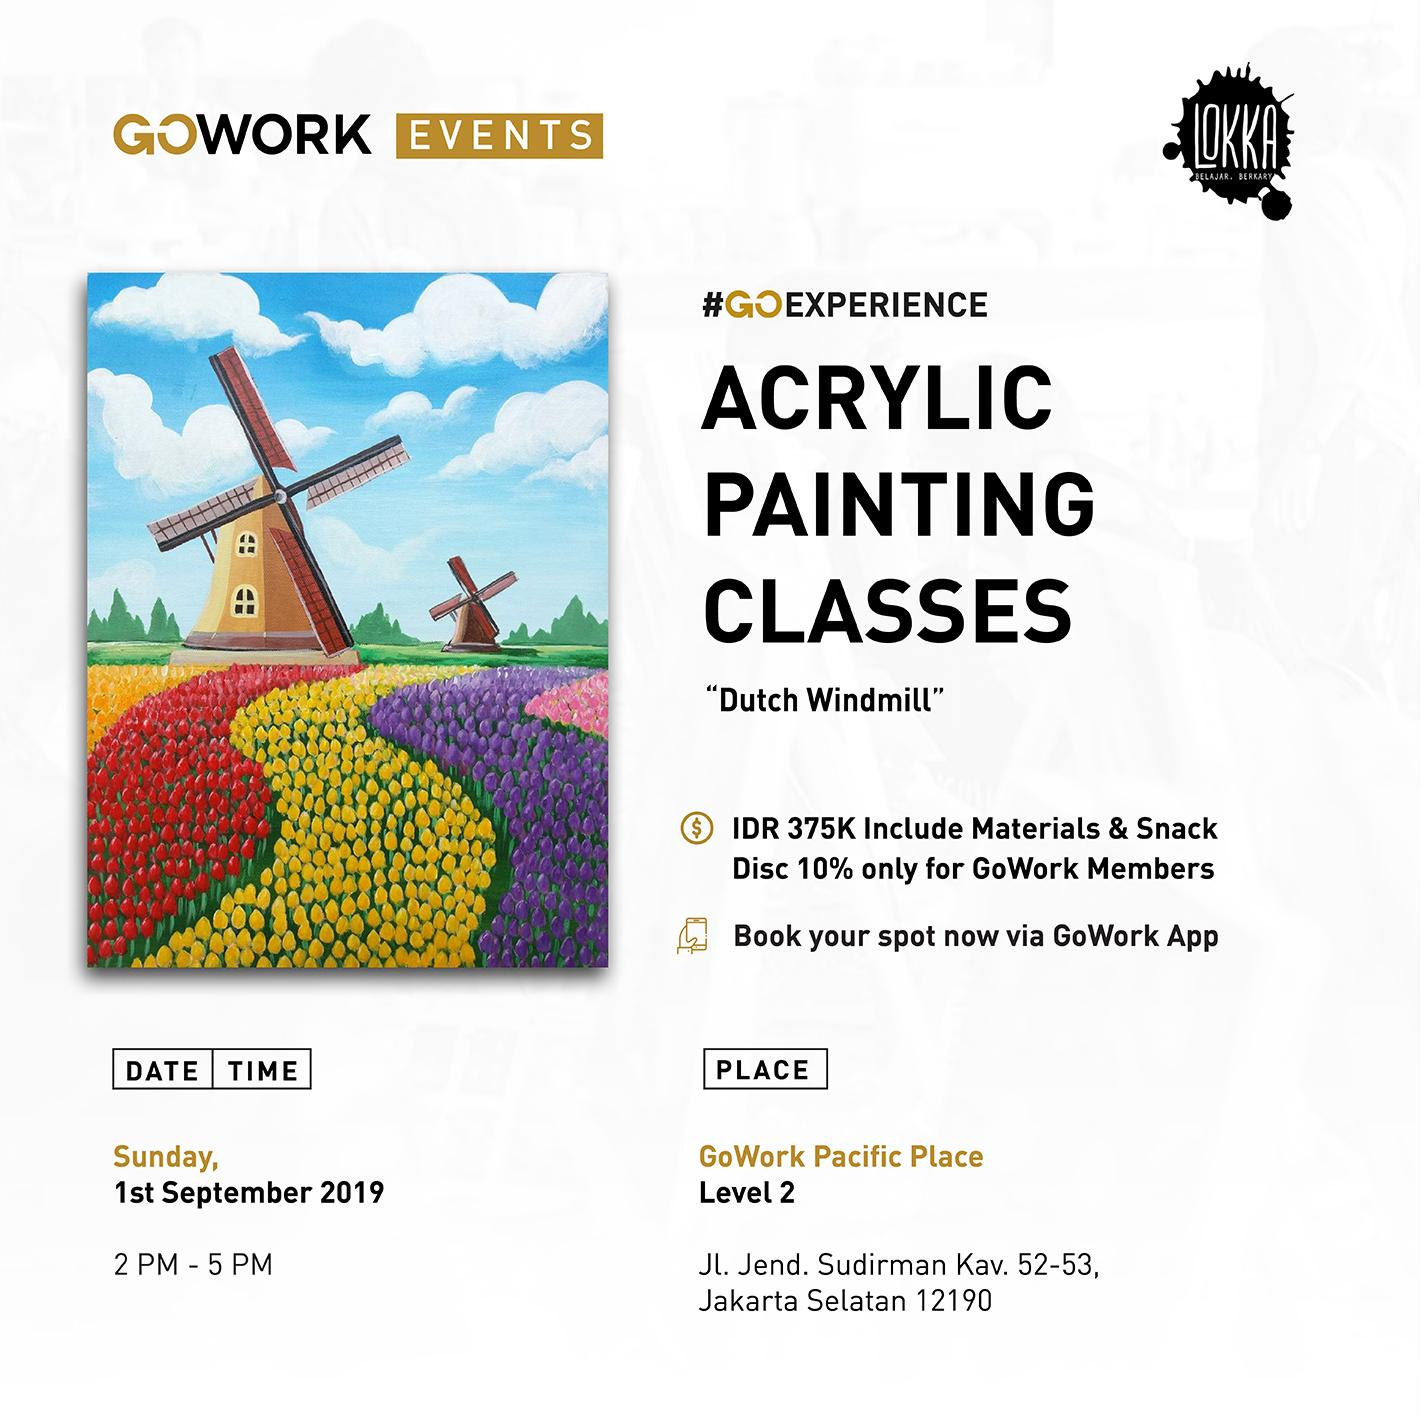 Acrylic Painting Classes : Dutch Windmill